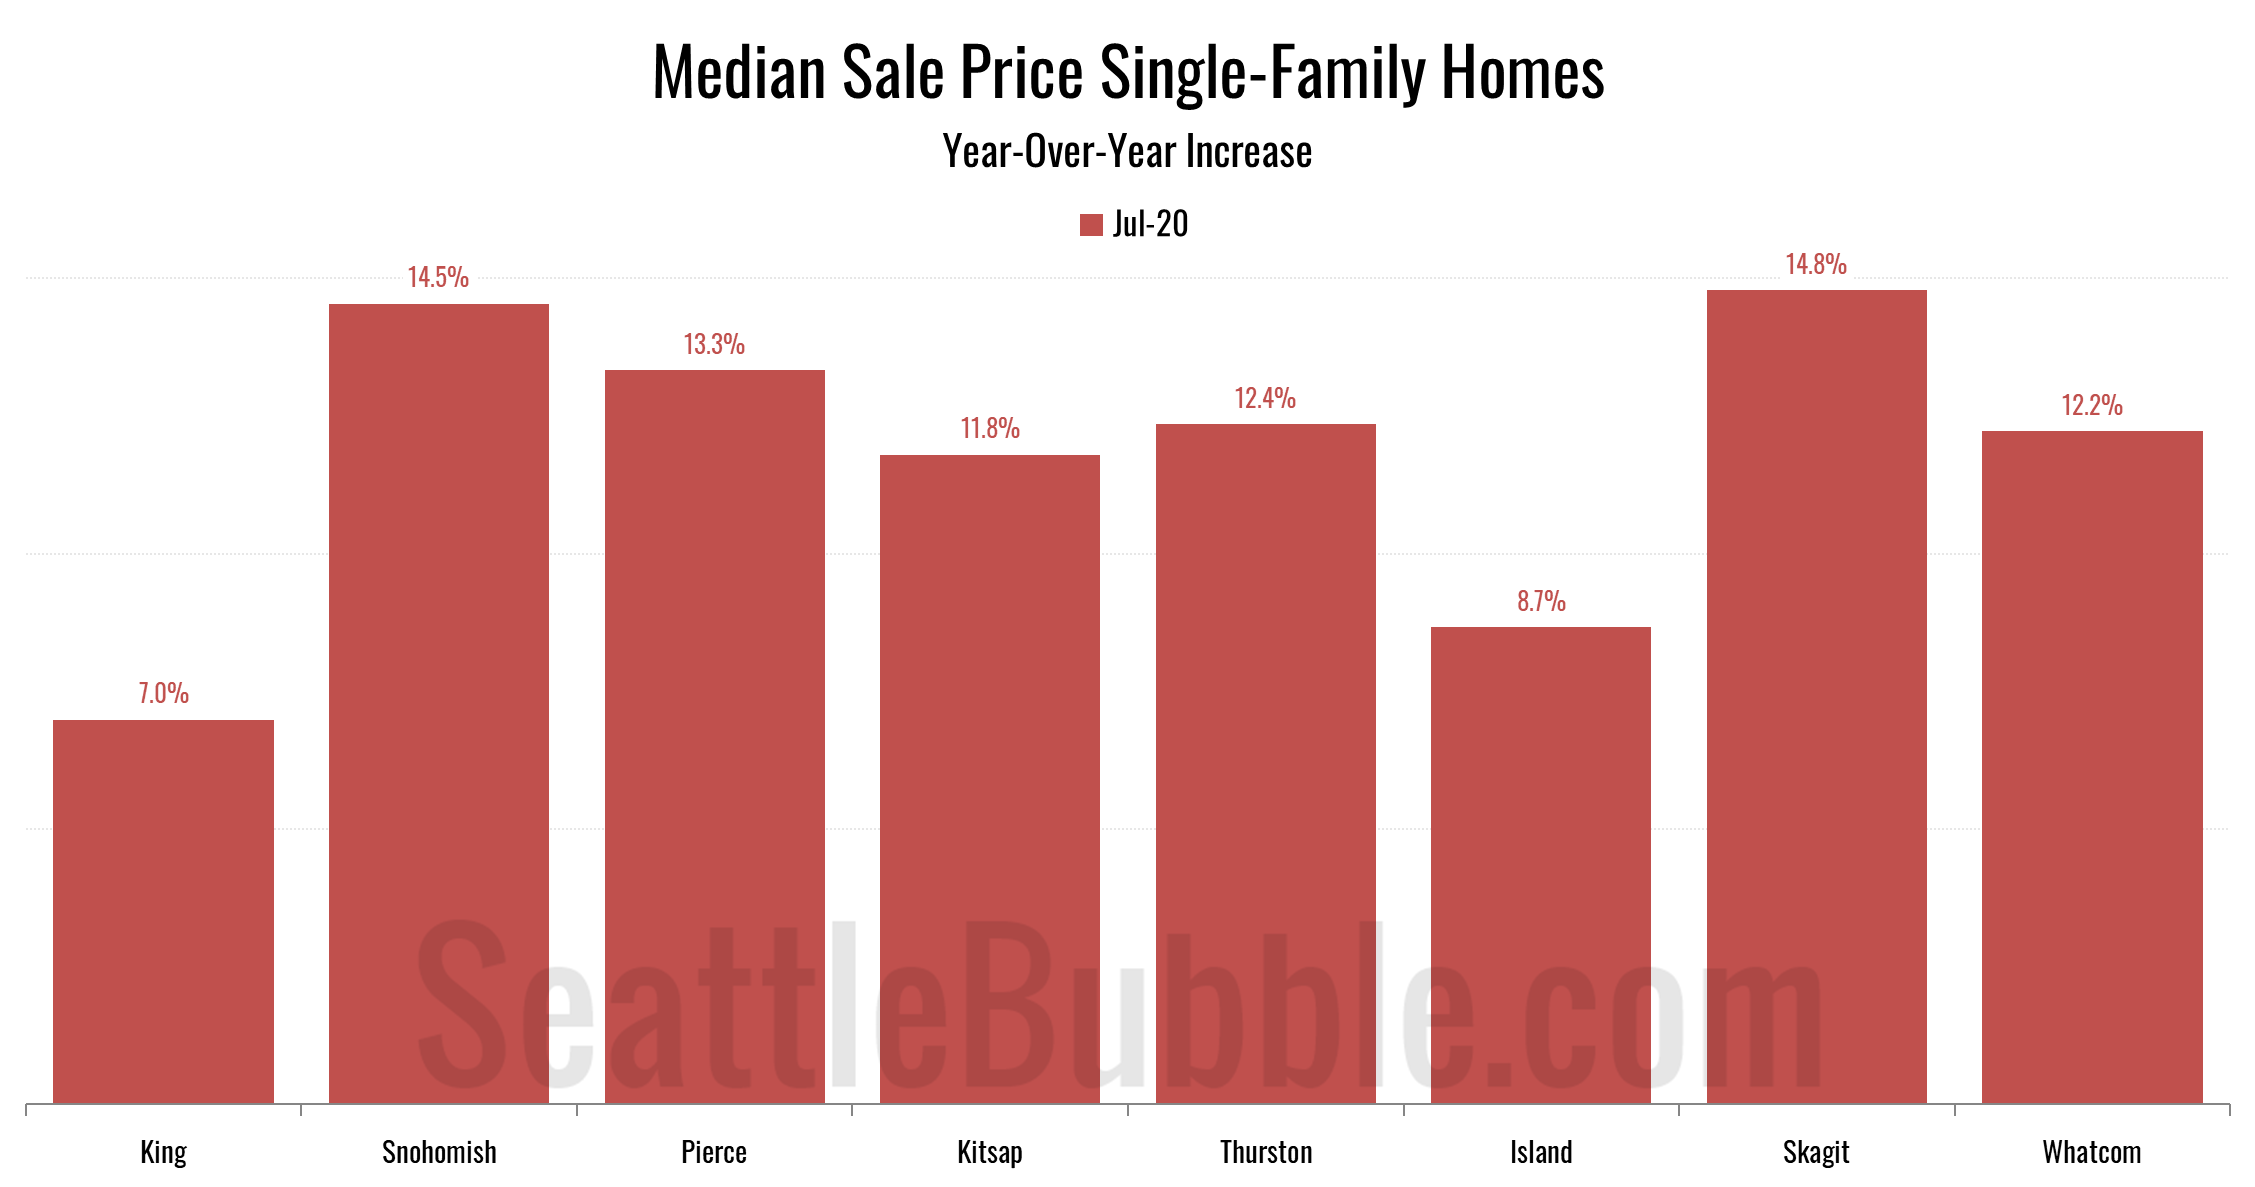 Year-Over-Year Change: Median Sale Price Single-Family Homes (July 2020)